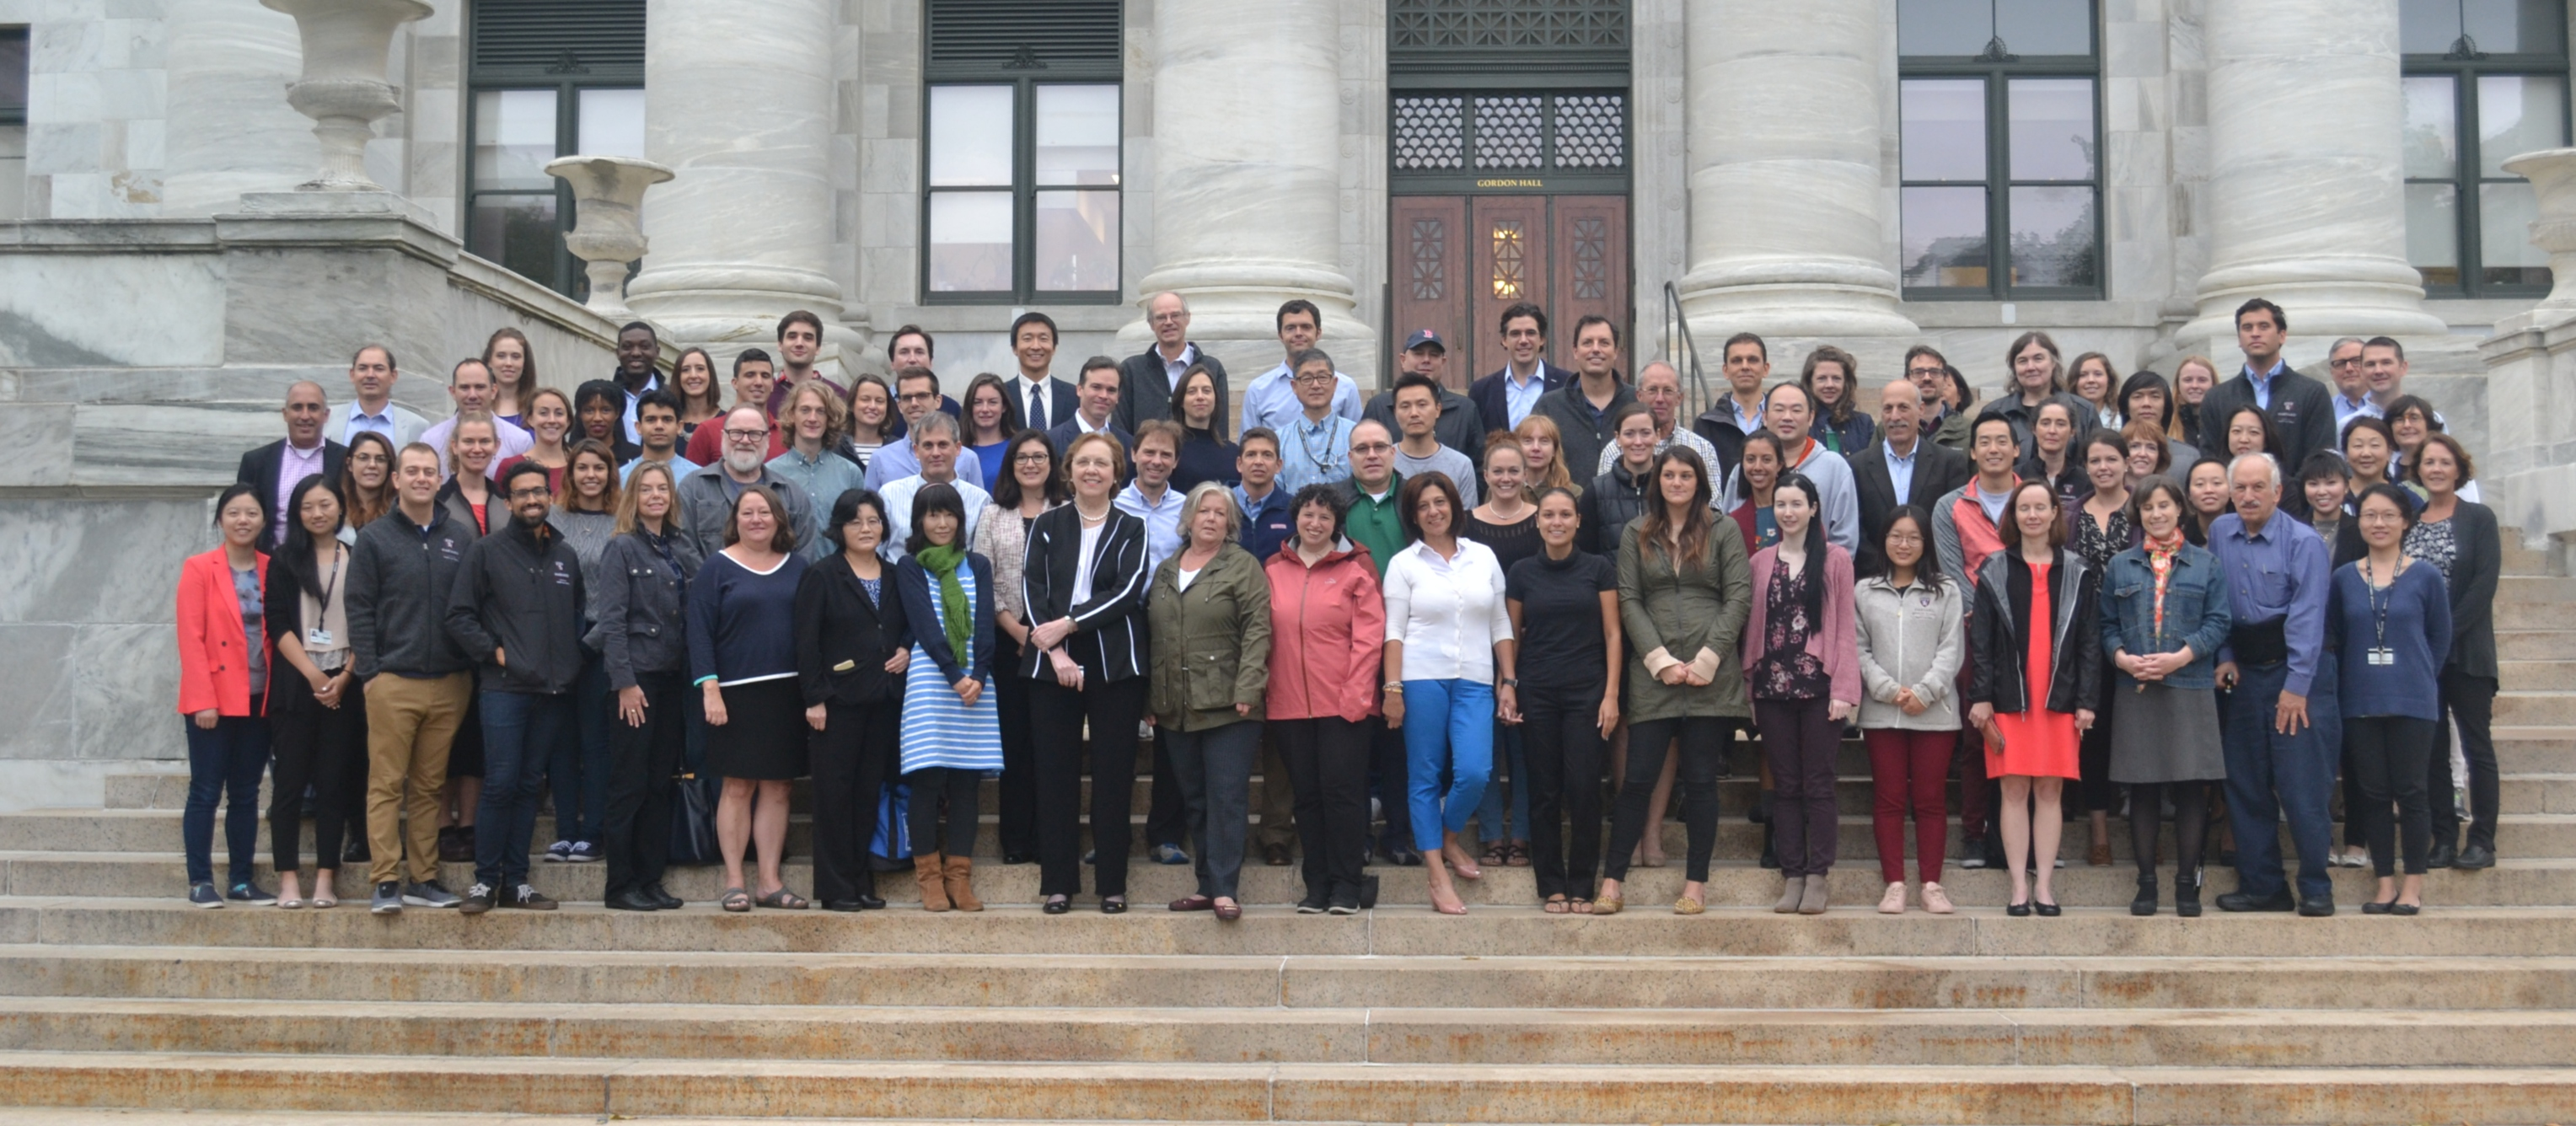 The faculty and staff of the Department of Health Care Policy